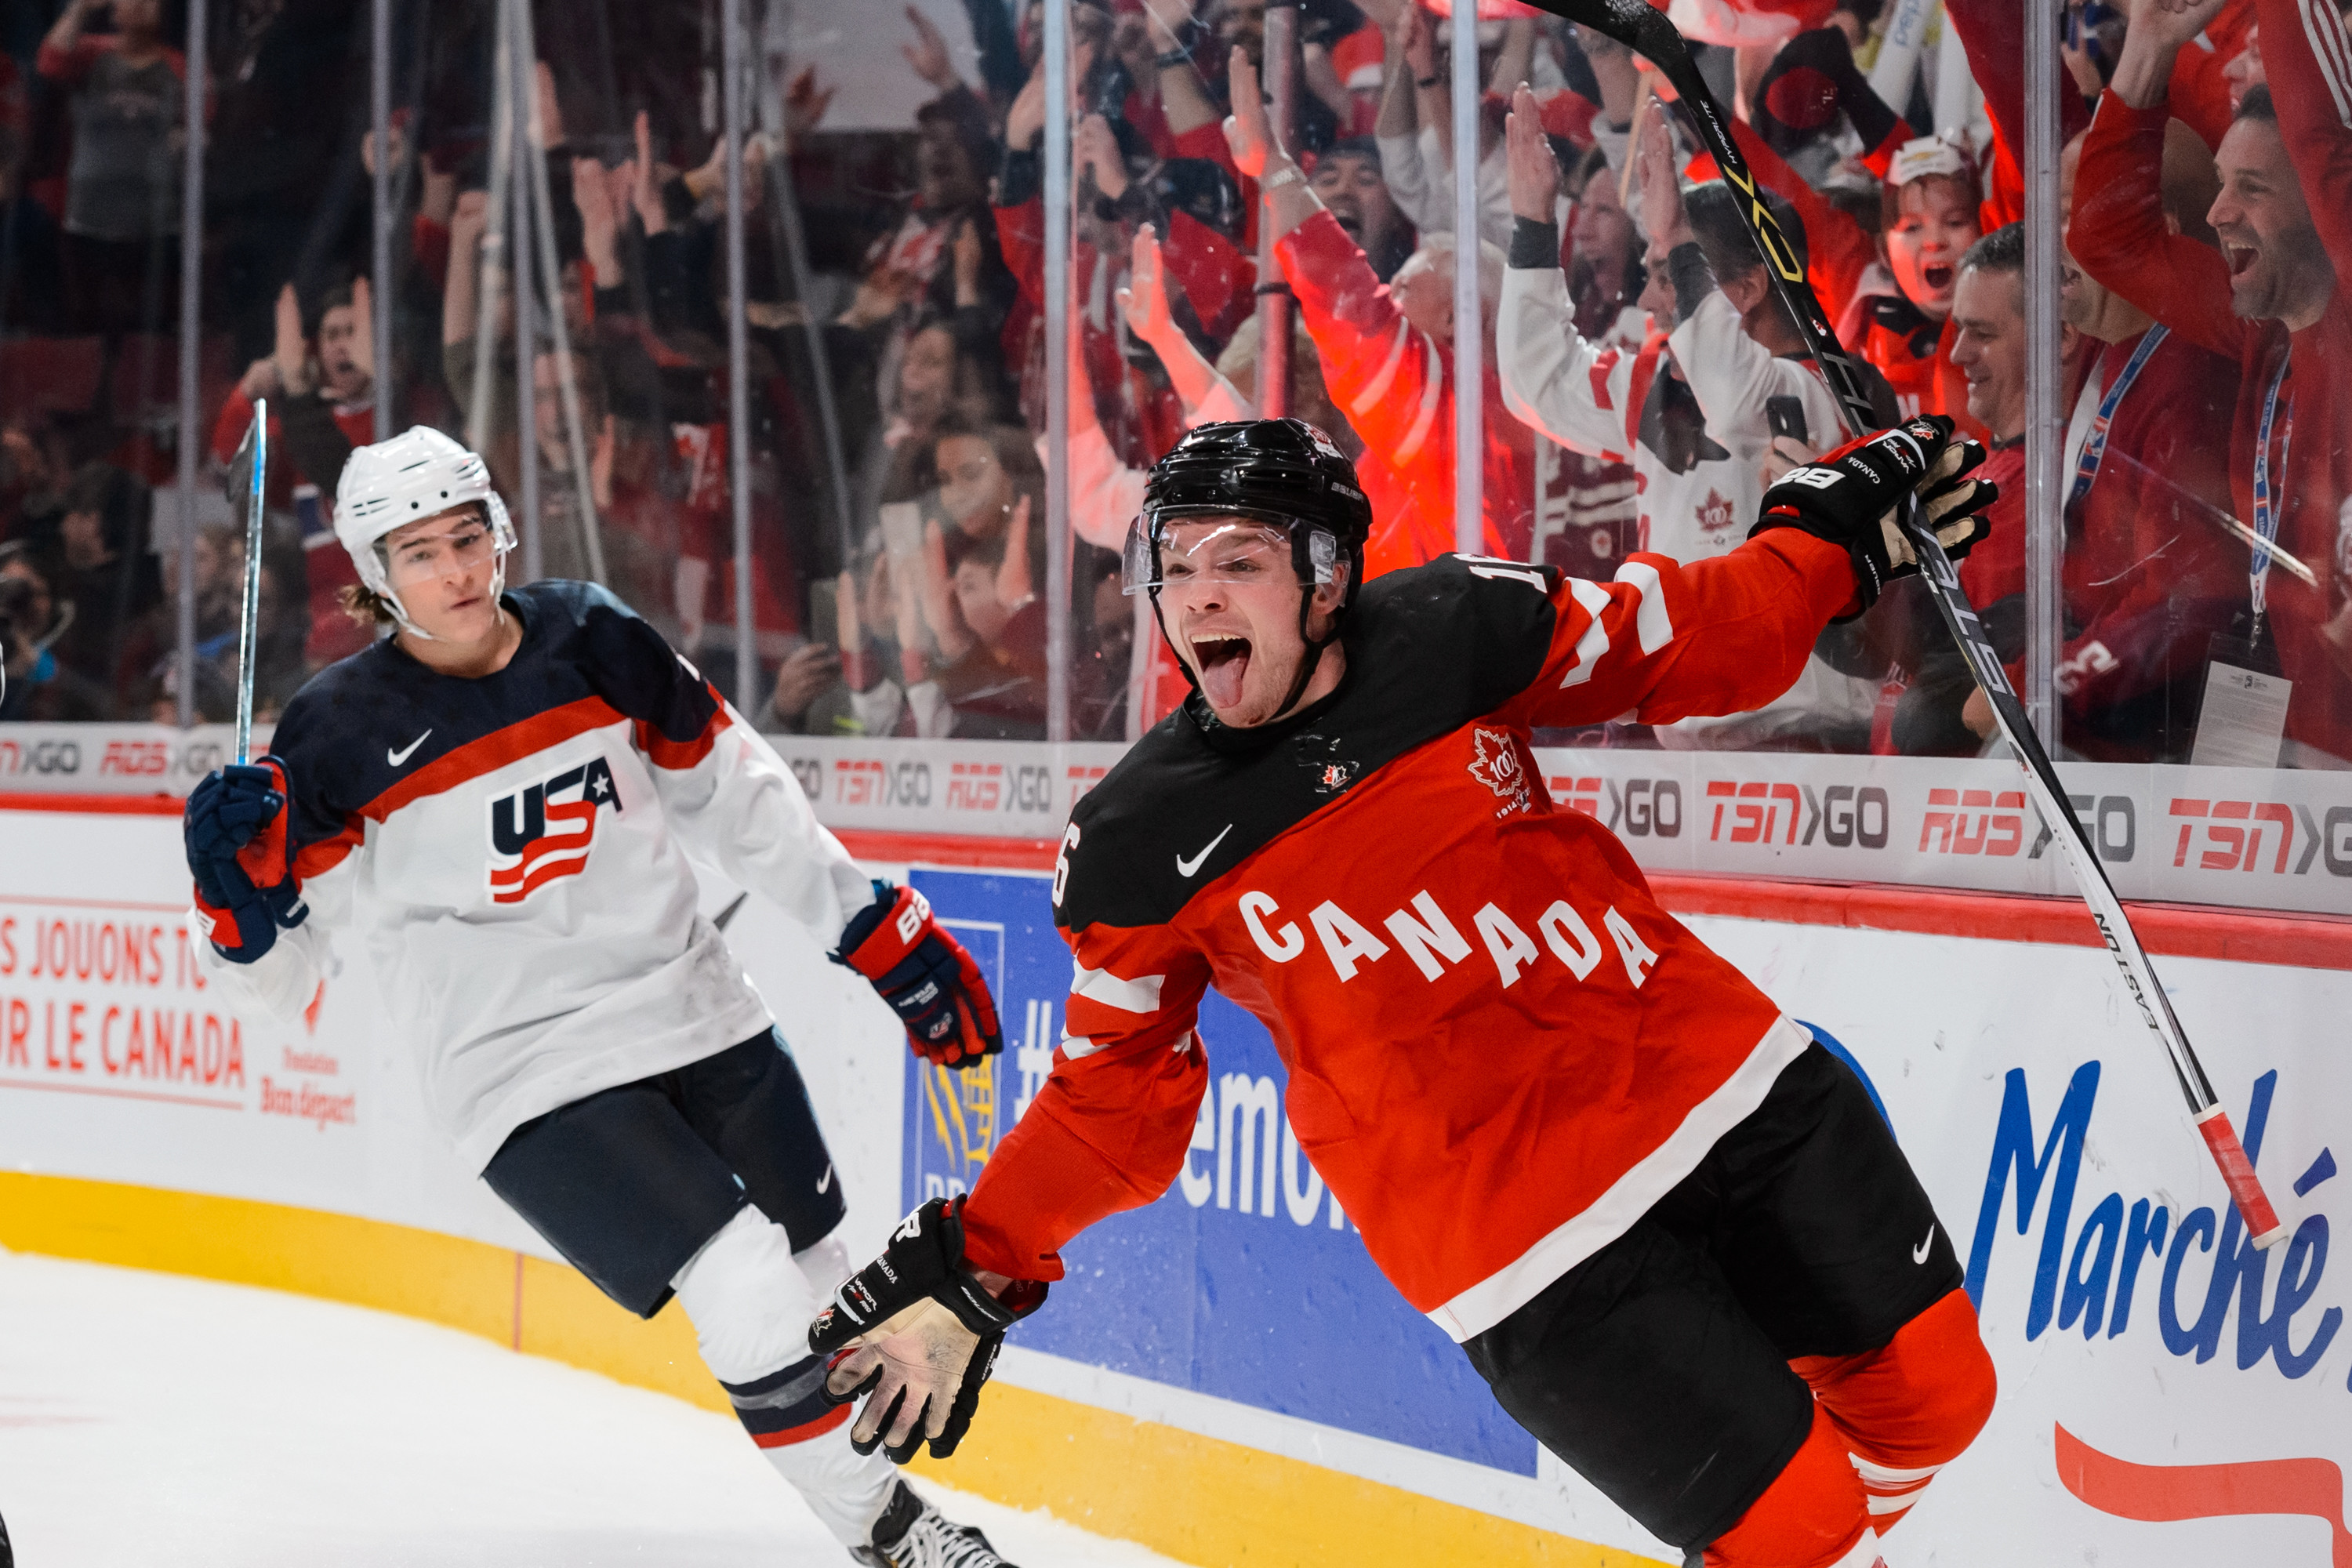 United States vs. Canada 2015 final score: Max Domi leads Canadians to victory - SBNation.com